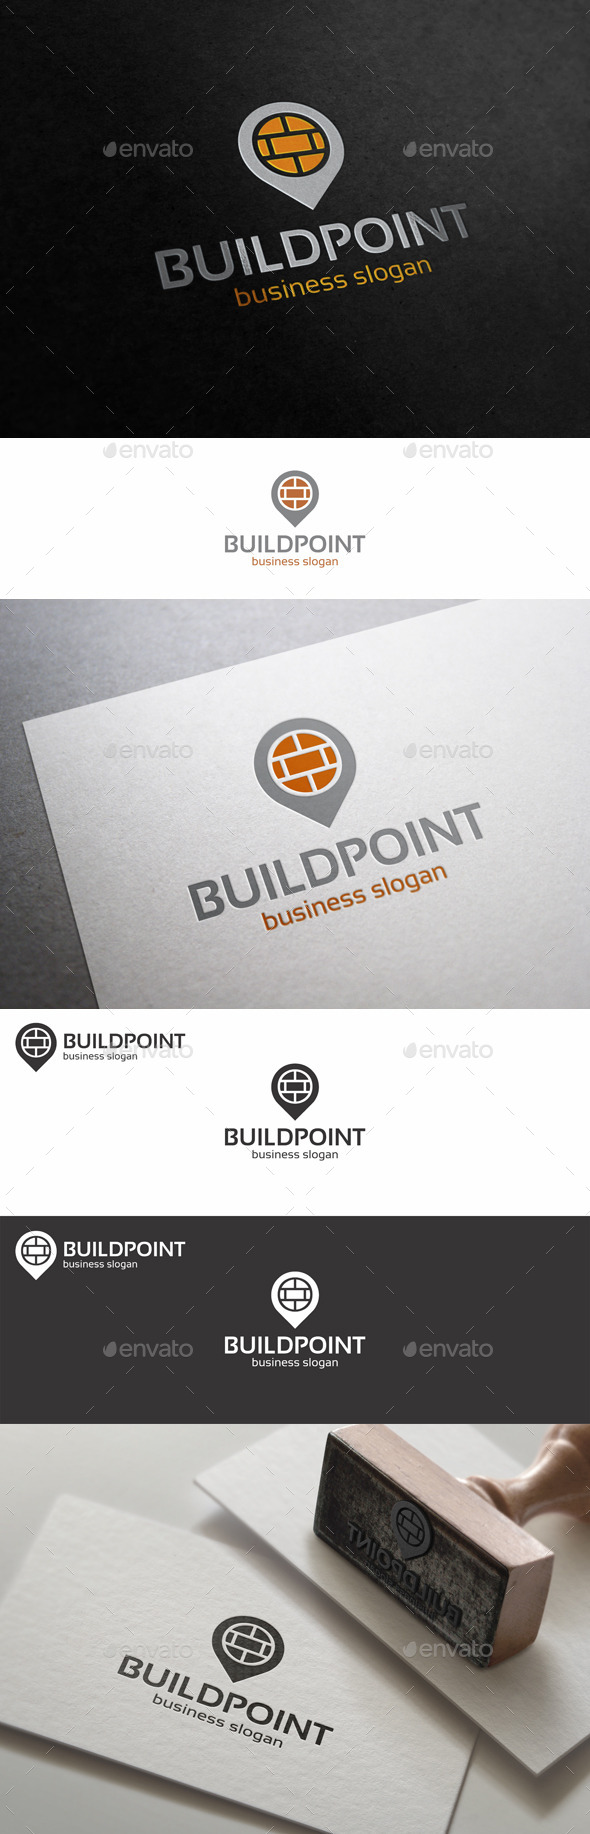 Build Point Place Logo Template